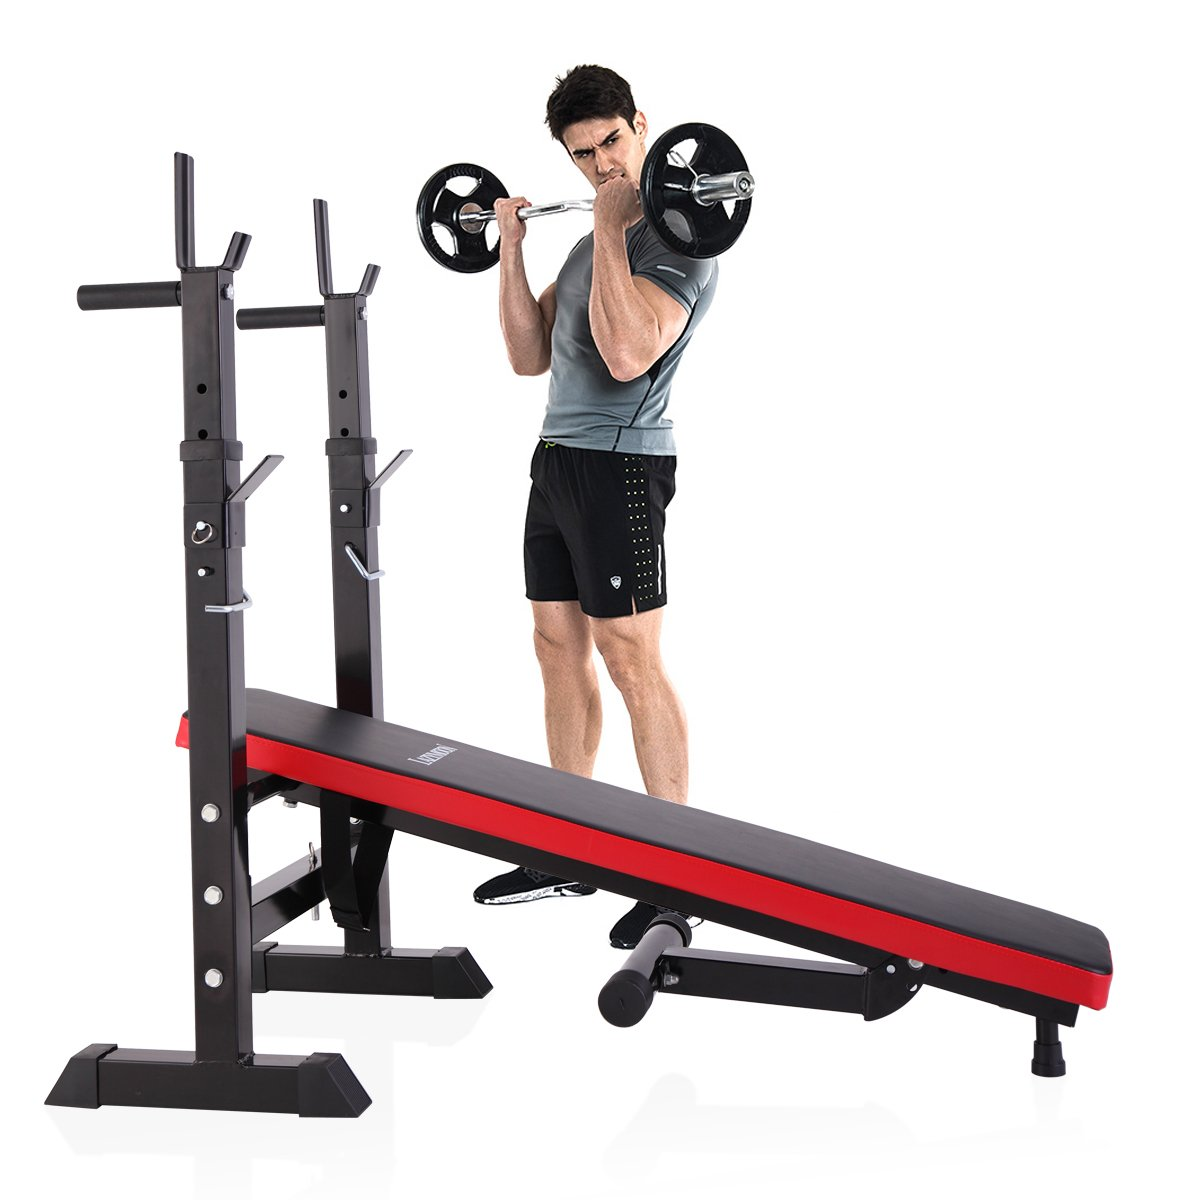 JAXPETY Multi-function Adjustable Weight Lifting Bench